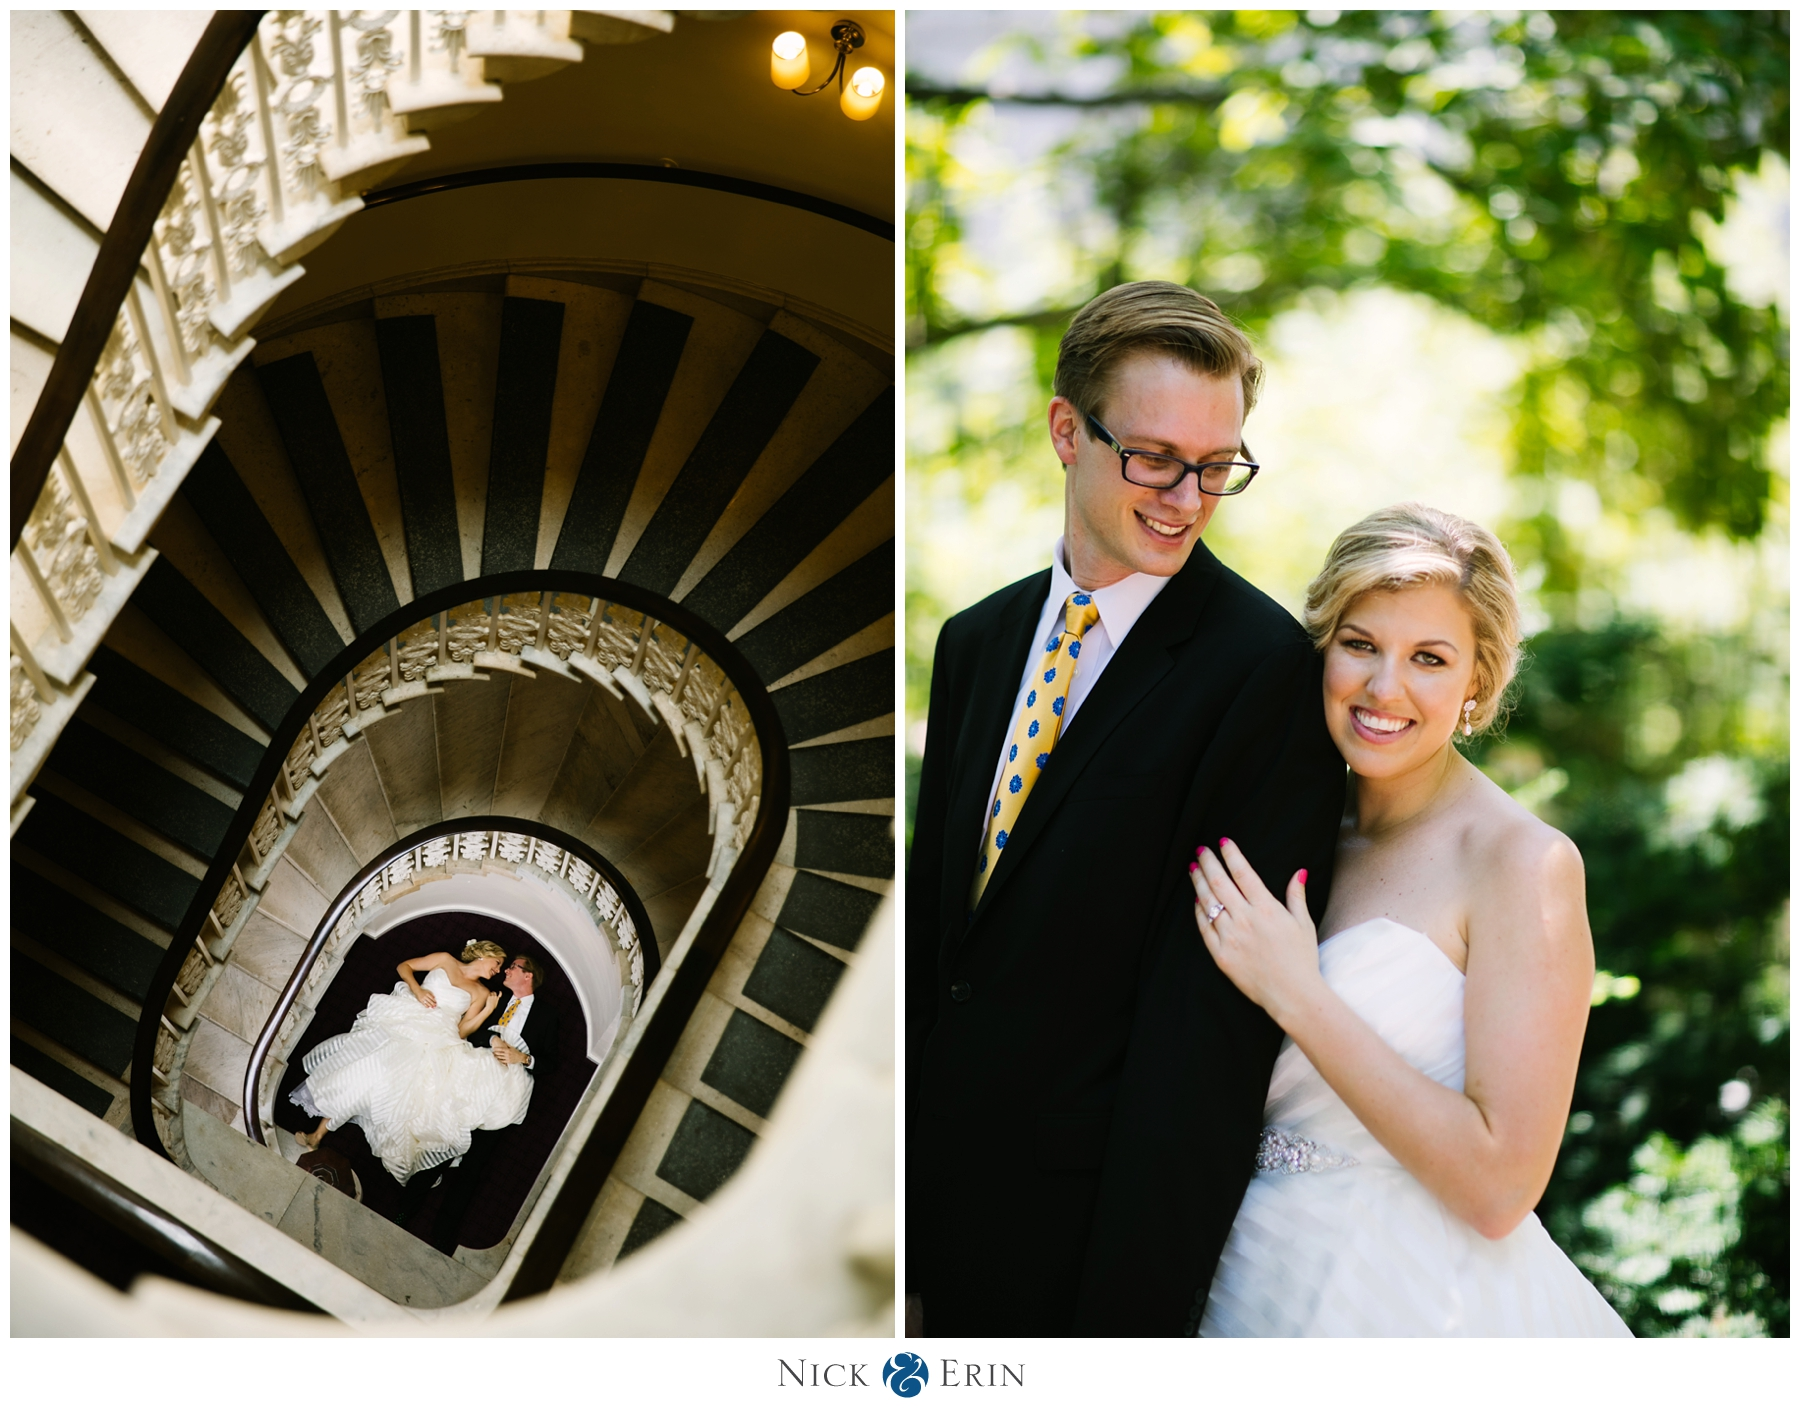 Donner_Photography_Washington DC Wedding_Rachel & Taylor_0003